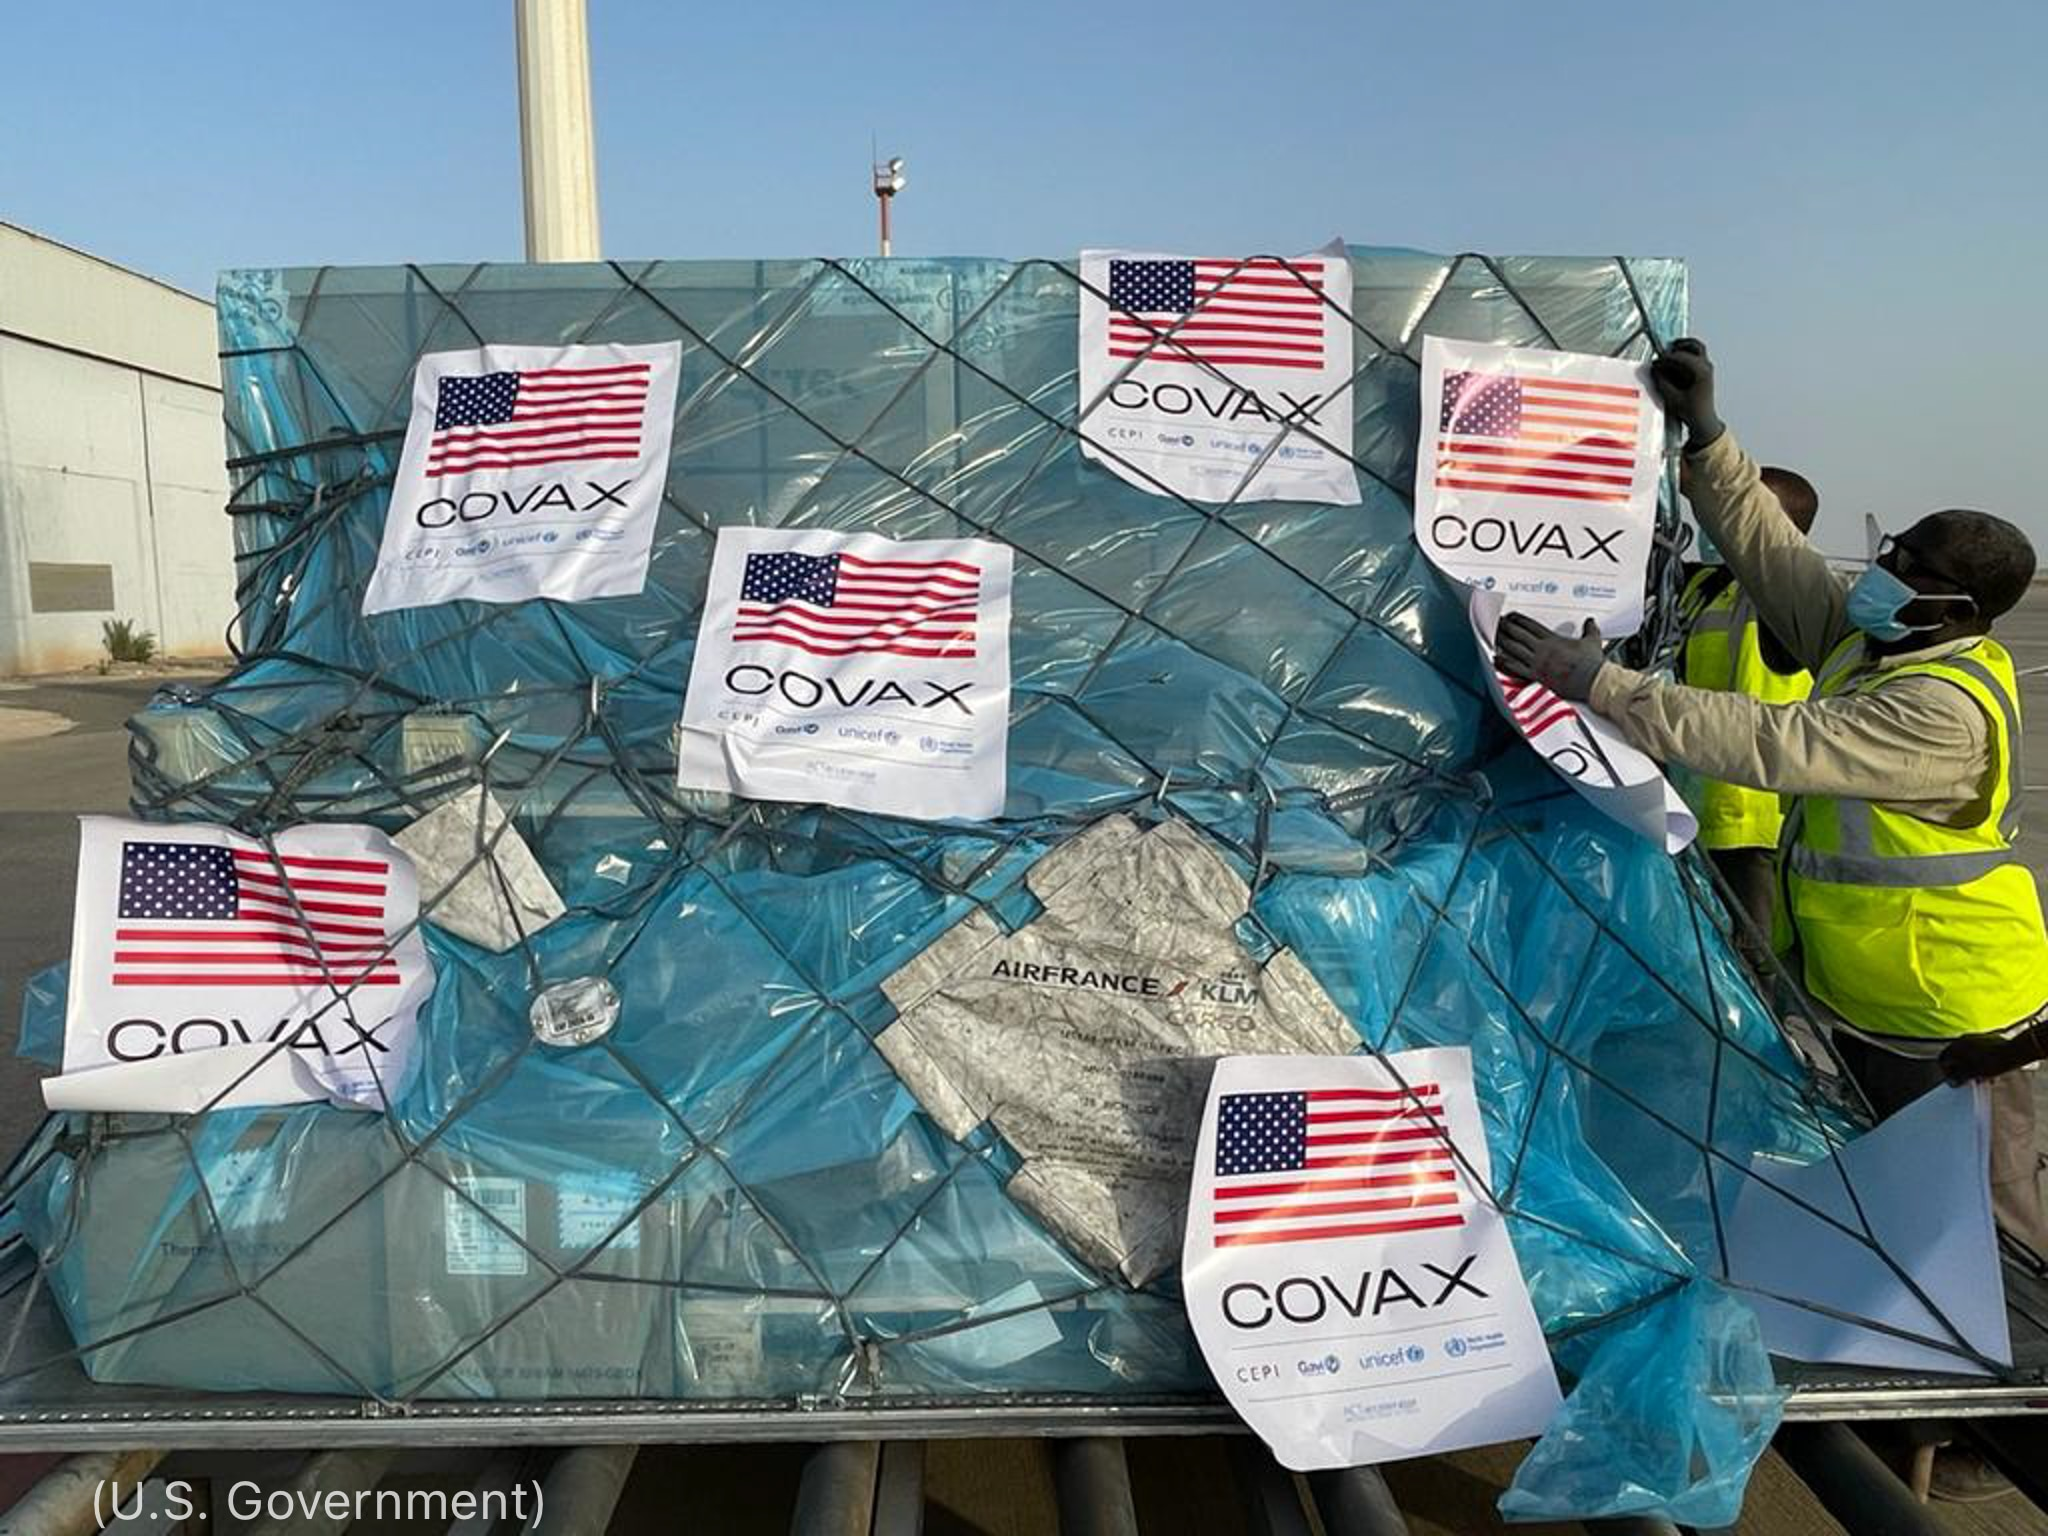 Man putting sticker with U.S. flag and 'COVAX' onto pallet of boxes (U.S. Government)